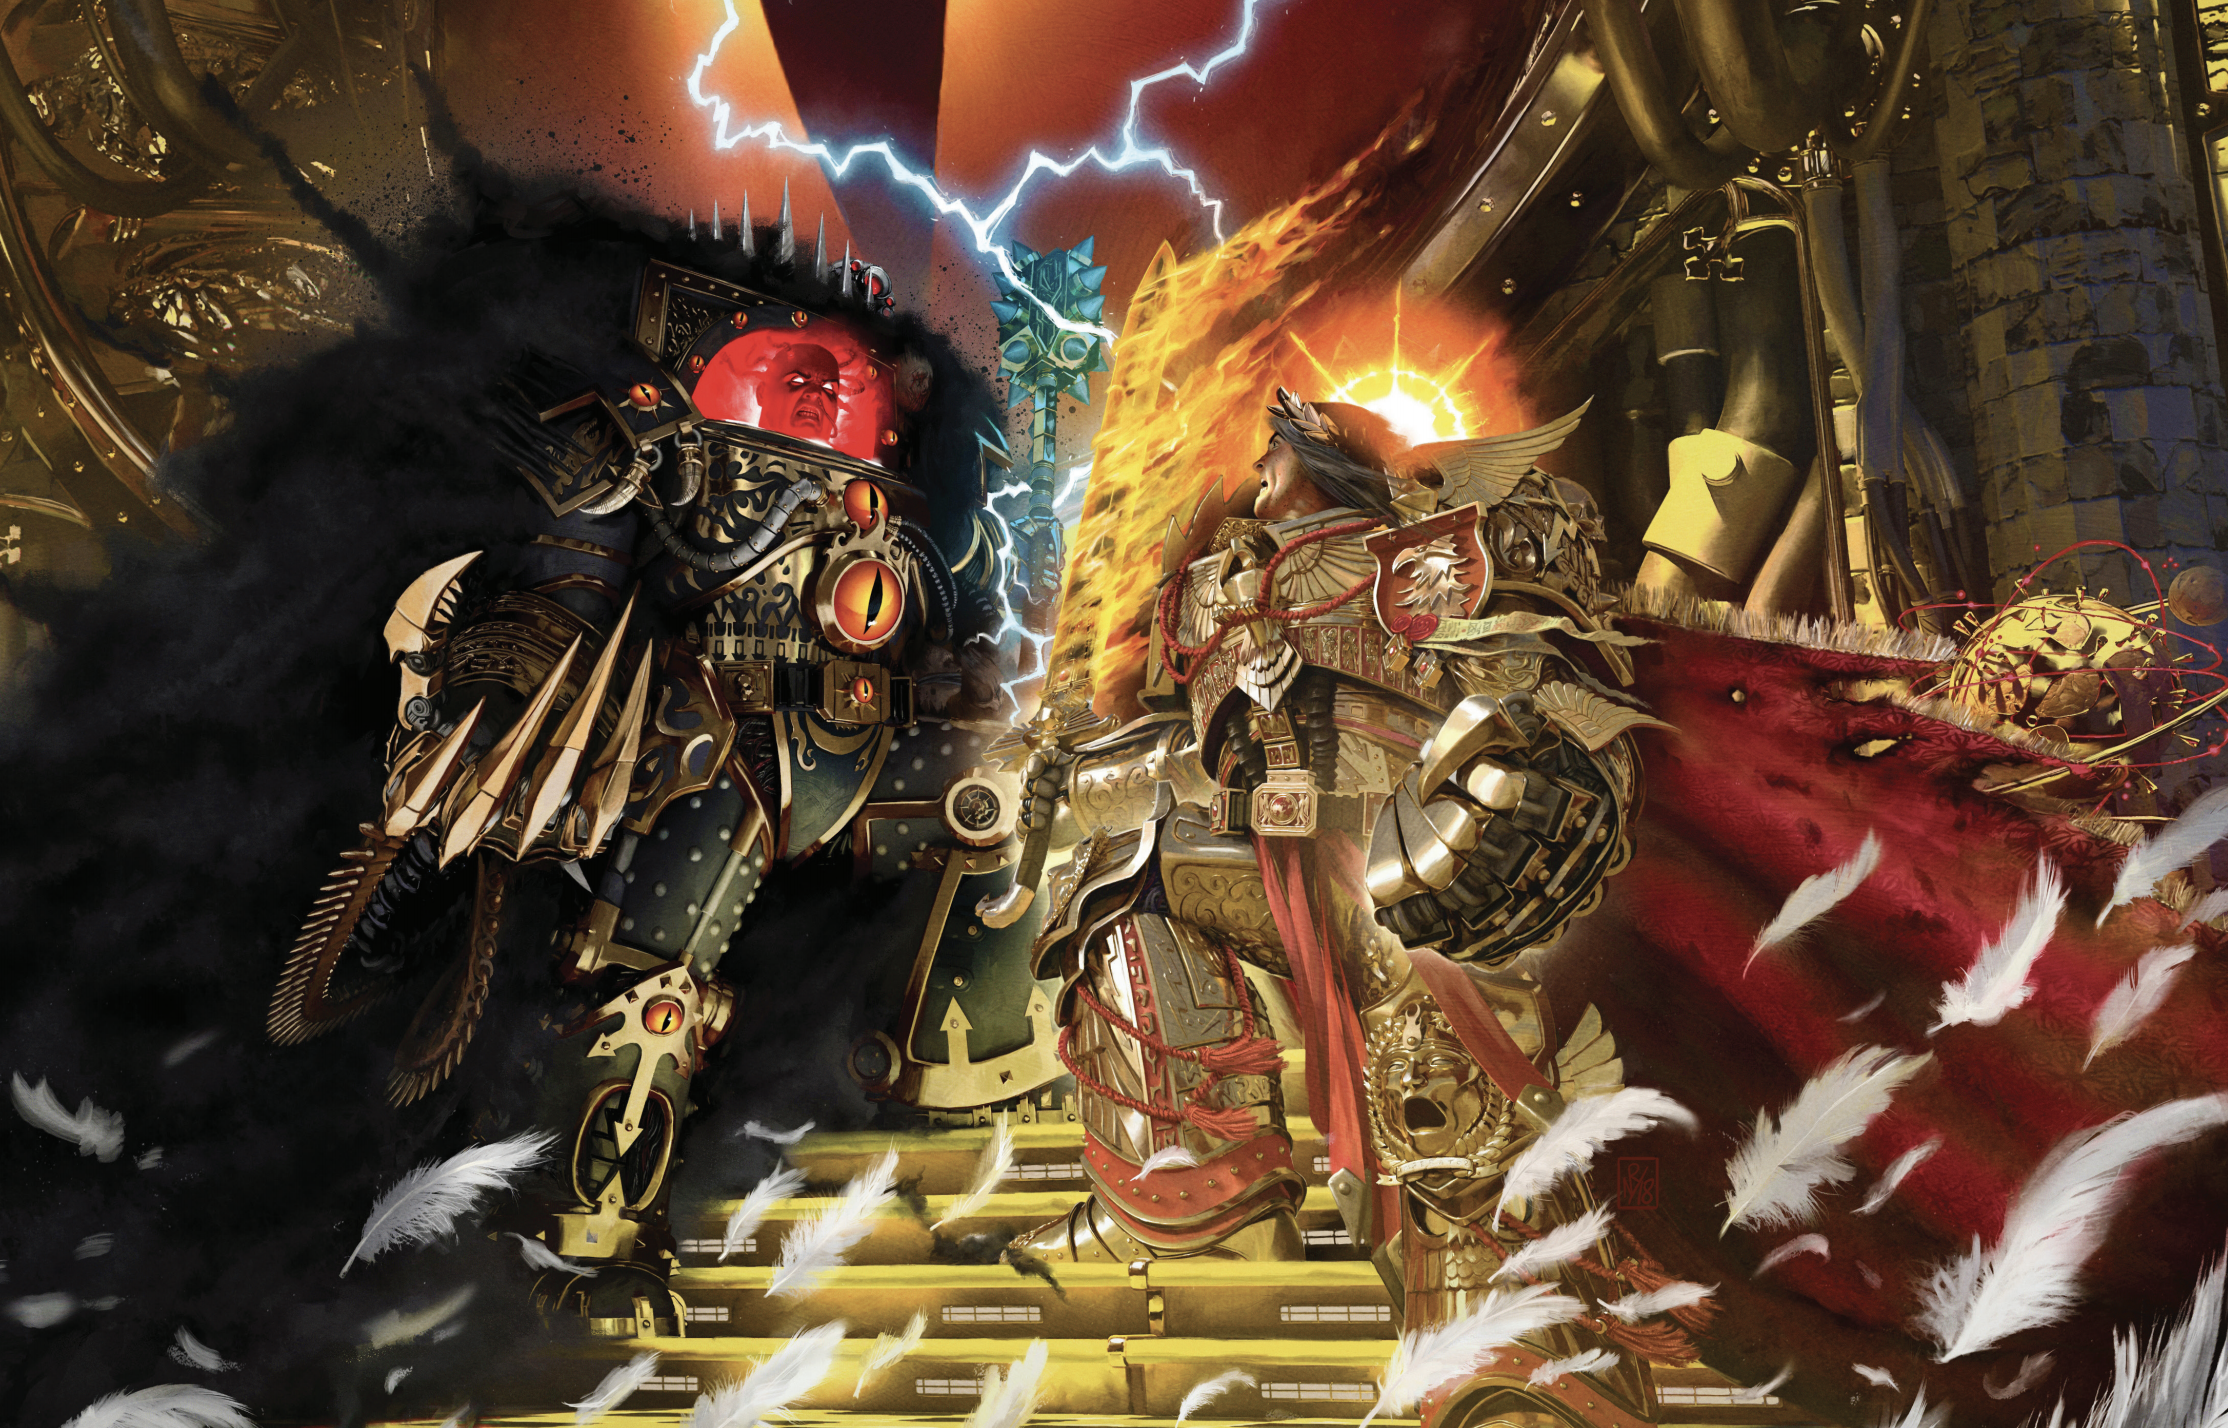 Programme des publications The Black Library 2018 - UK - Page 5 Heresy2018-06-16